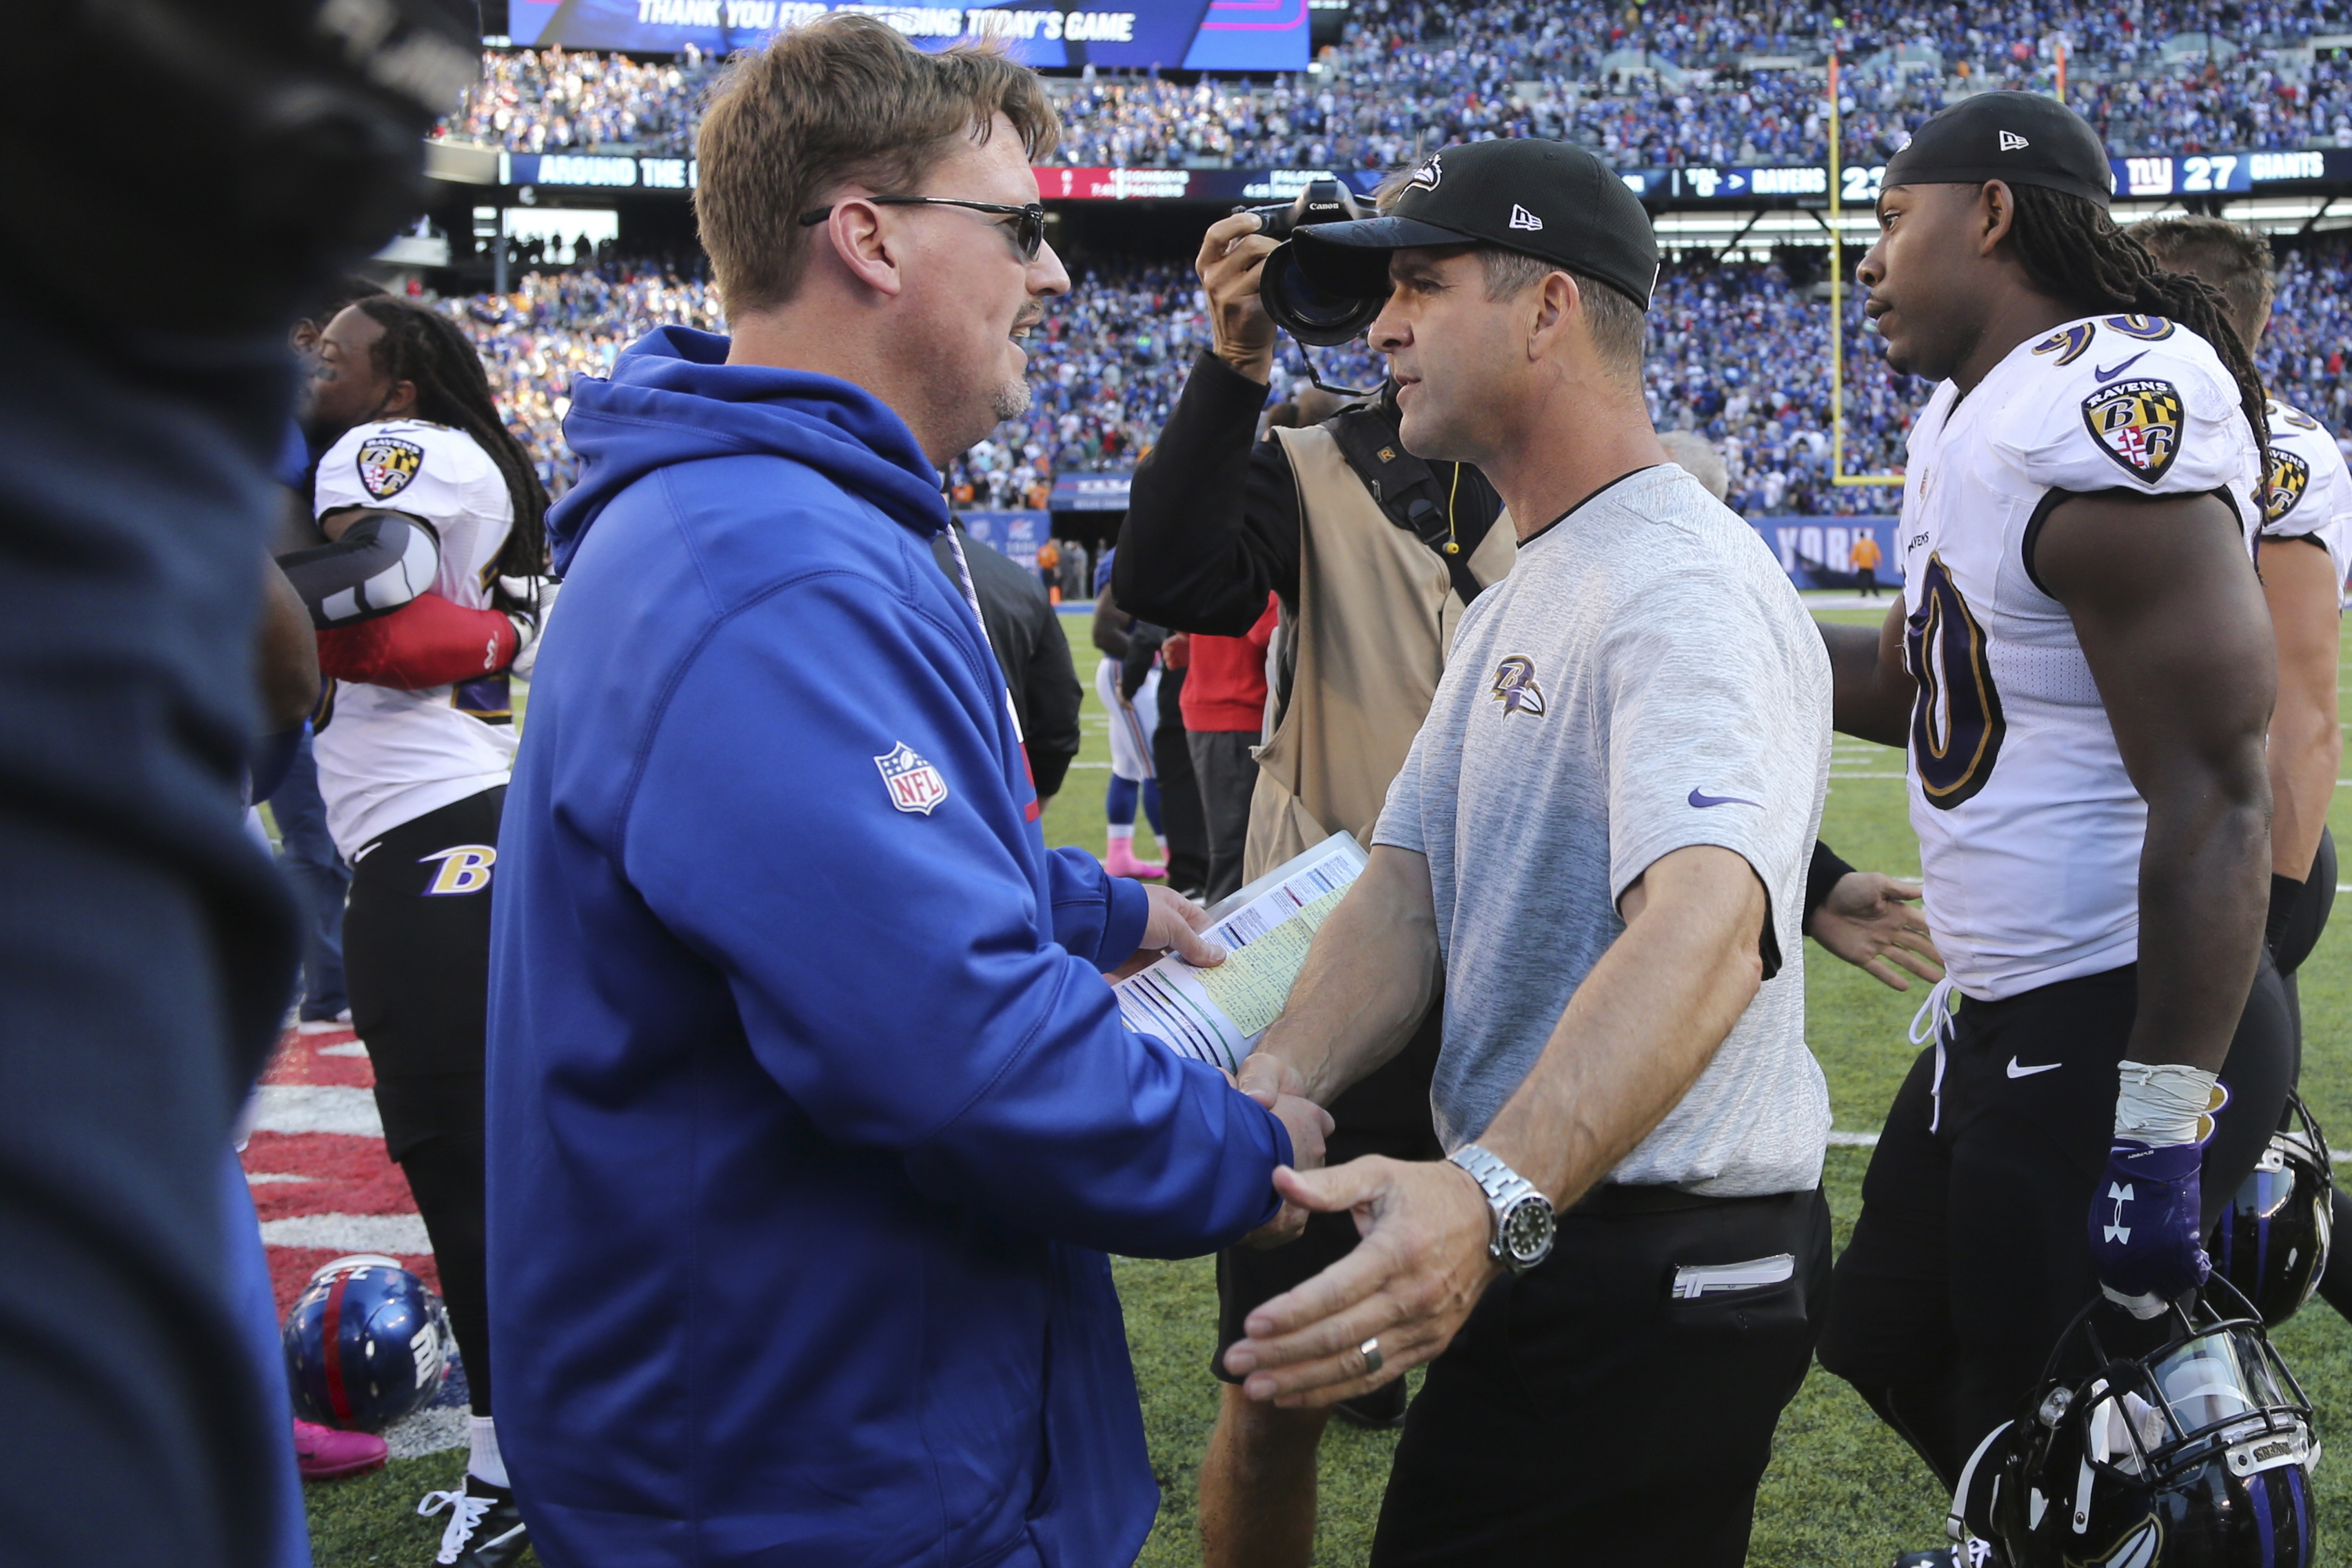 New York Giants head coach Ben McAdoo, left, shakes hands with Baltimore Ravens head coach John Harbaugh, right, after an NFL football game Sunday, Oct. 16, 2016, in East Rutherford, N.J. The Giants won 27-23. (AP Photo/Seth Wenig)